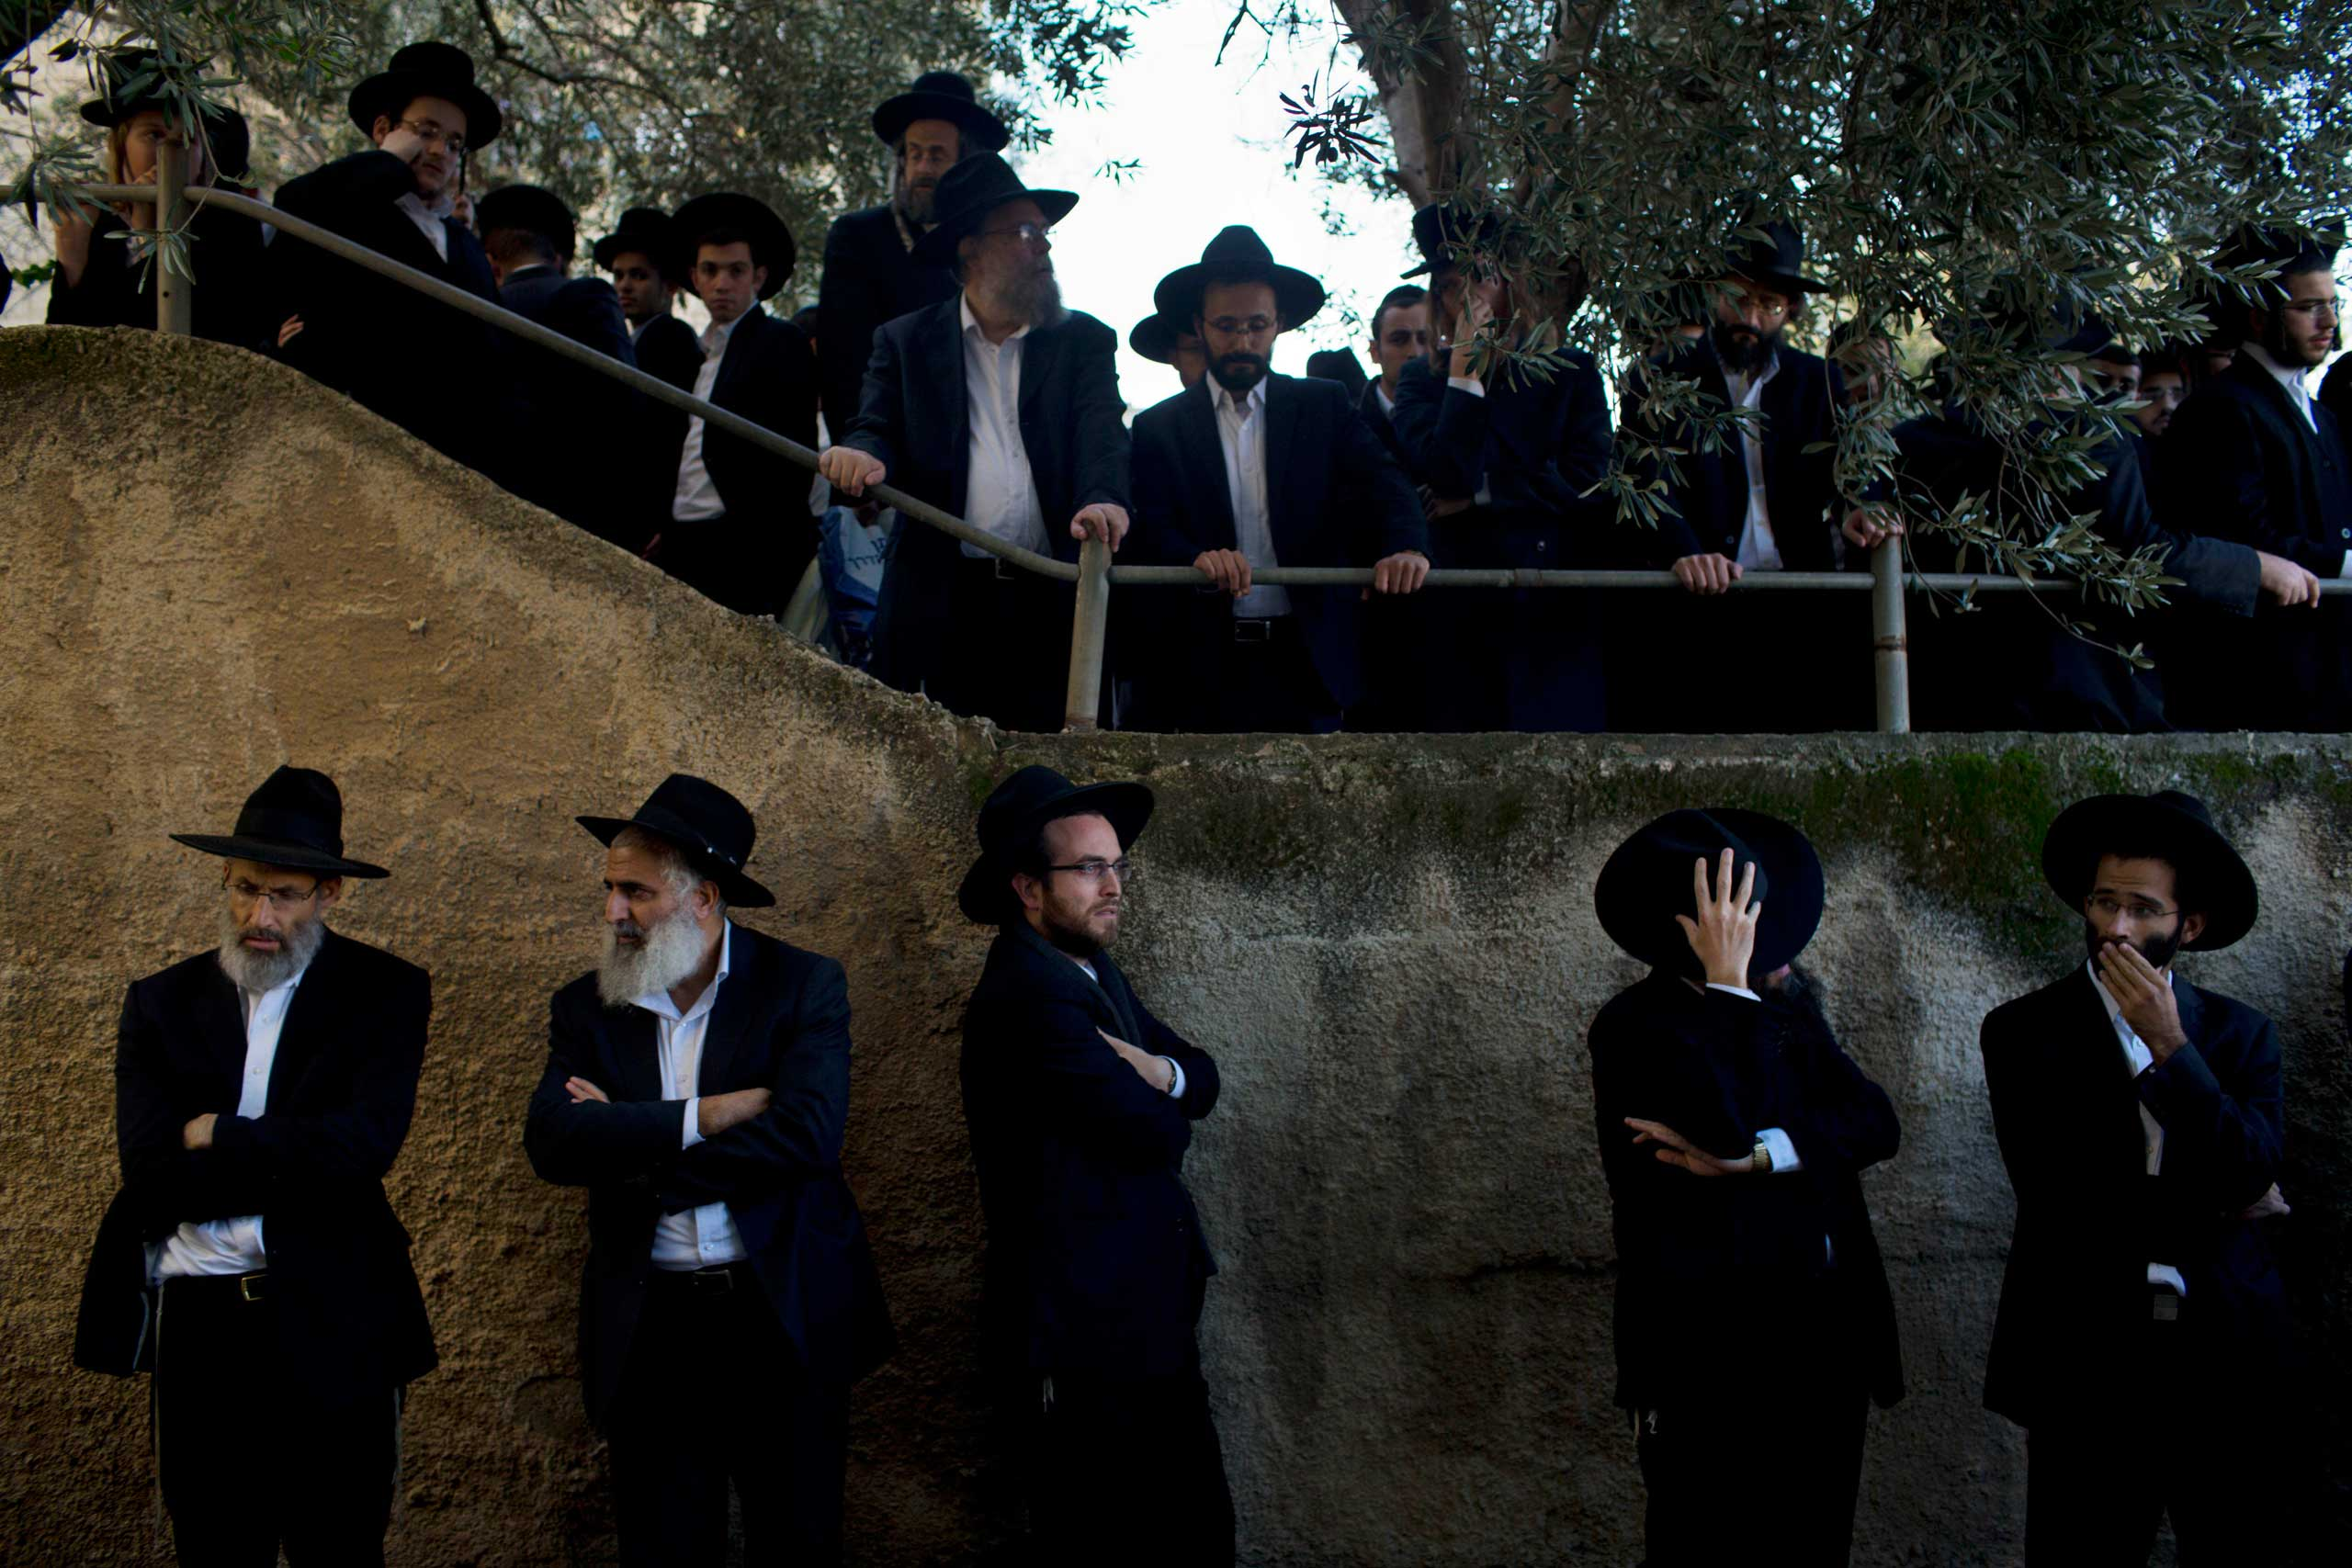 Nov. 18, 2014. Ultra-Orthodox Jews attend the funeral of Mosheh Twersky in Jerusalem. Two Palestinian cousins armed with meat cleavers and a gun stormed a Jerusalem synagogue during morning prayers, killing Twersky and three others in the city's bloodiest attack in years. Police killed the attackers in a shootout.